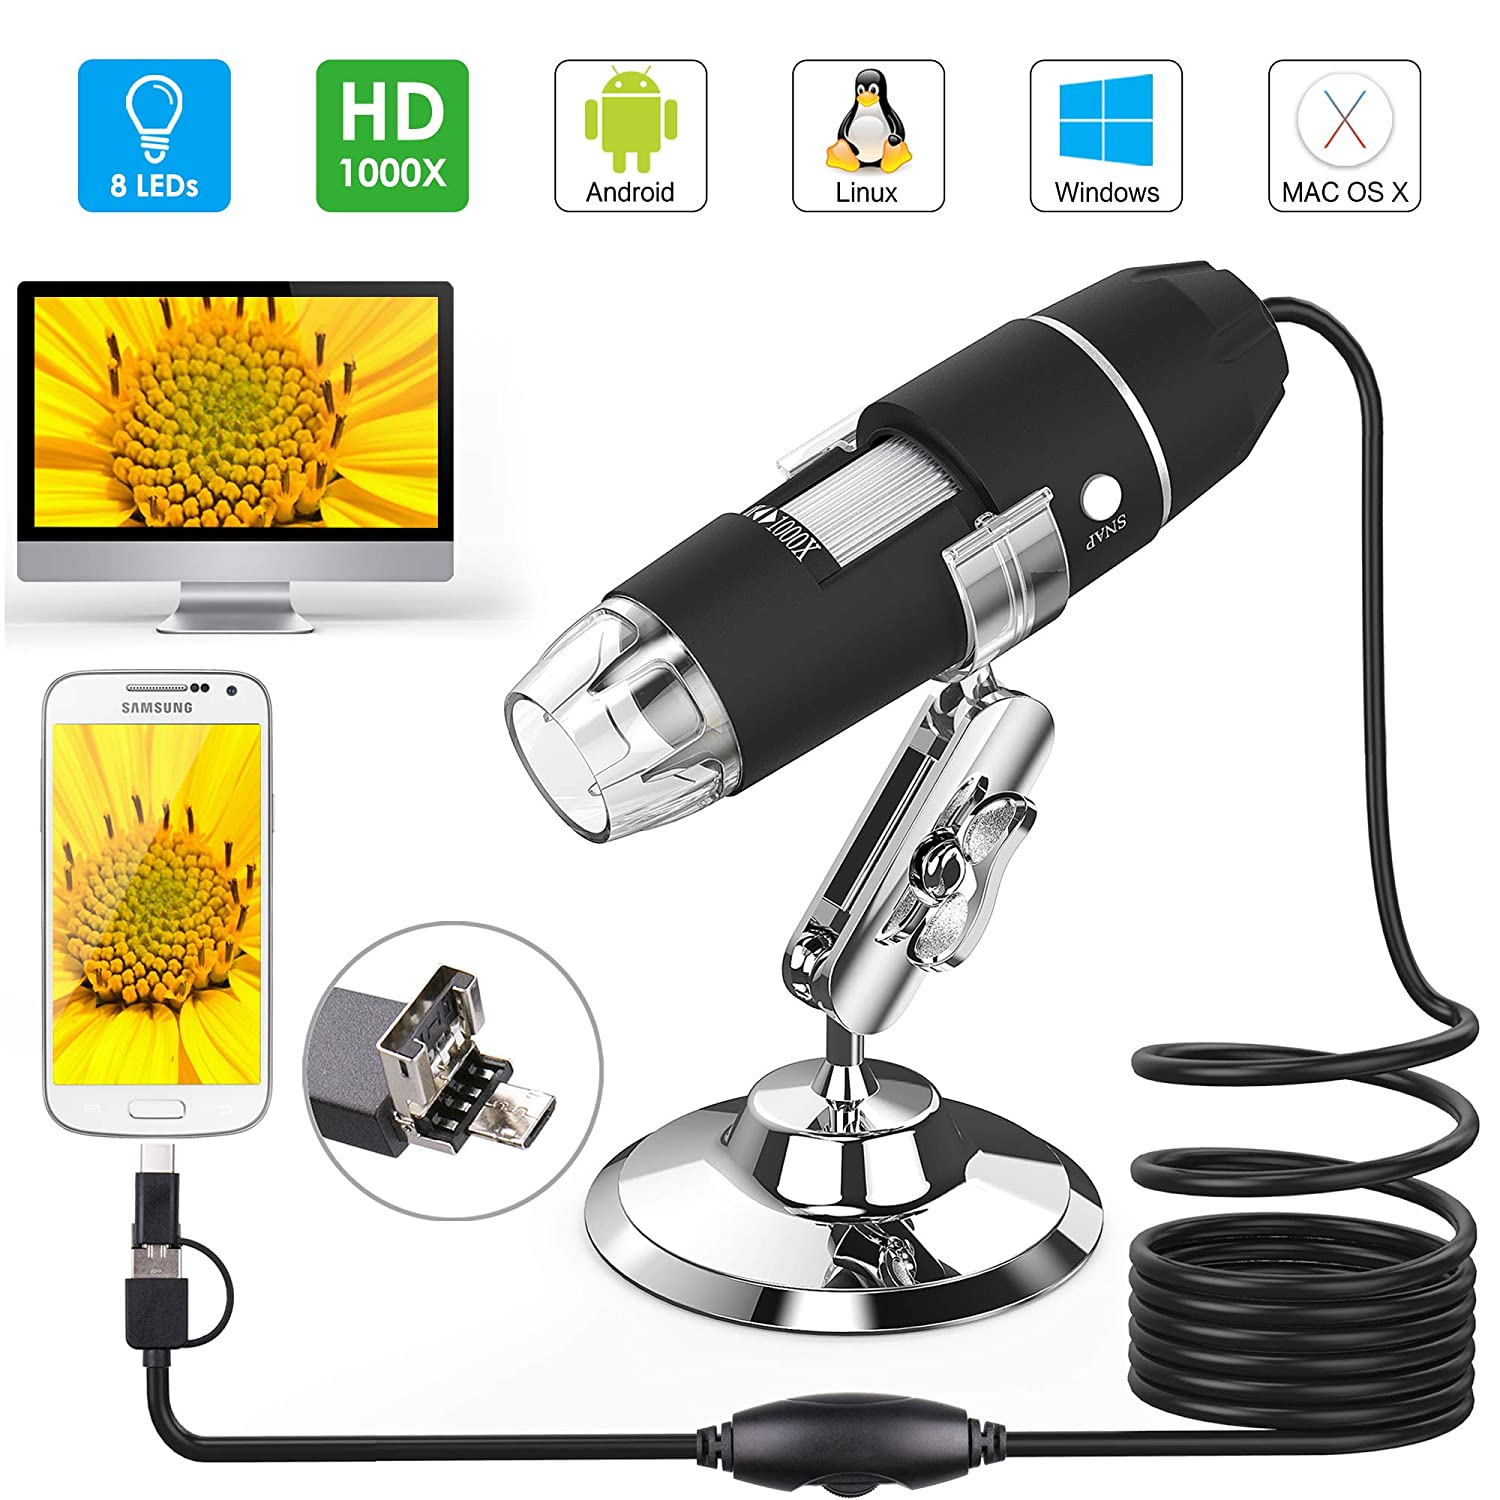 ... Splaks 1000x de Alta Potencia USB Microscopio Digital 3 en 1 Microscopio Digital con 8 Luces LED y Soporte para Microscopio Compatible con Windows, ...